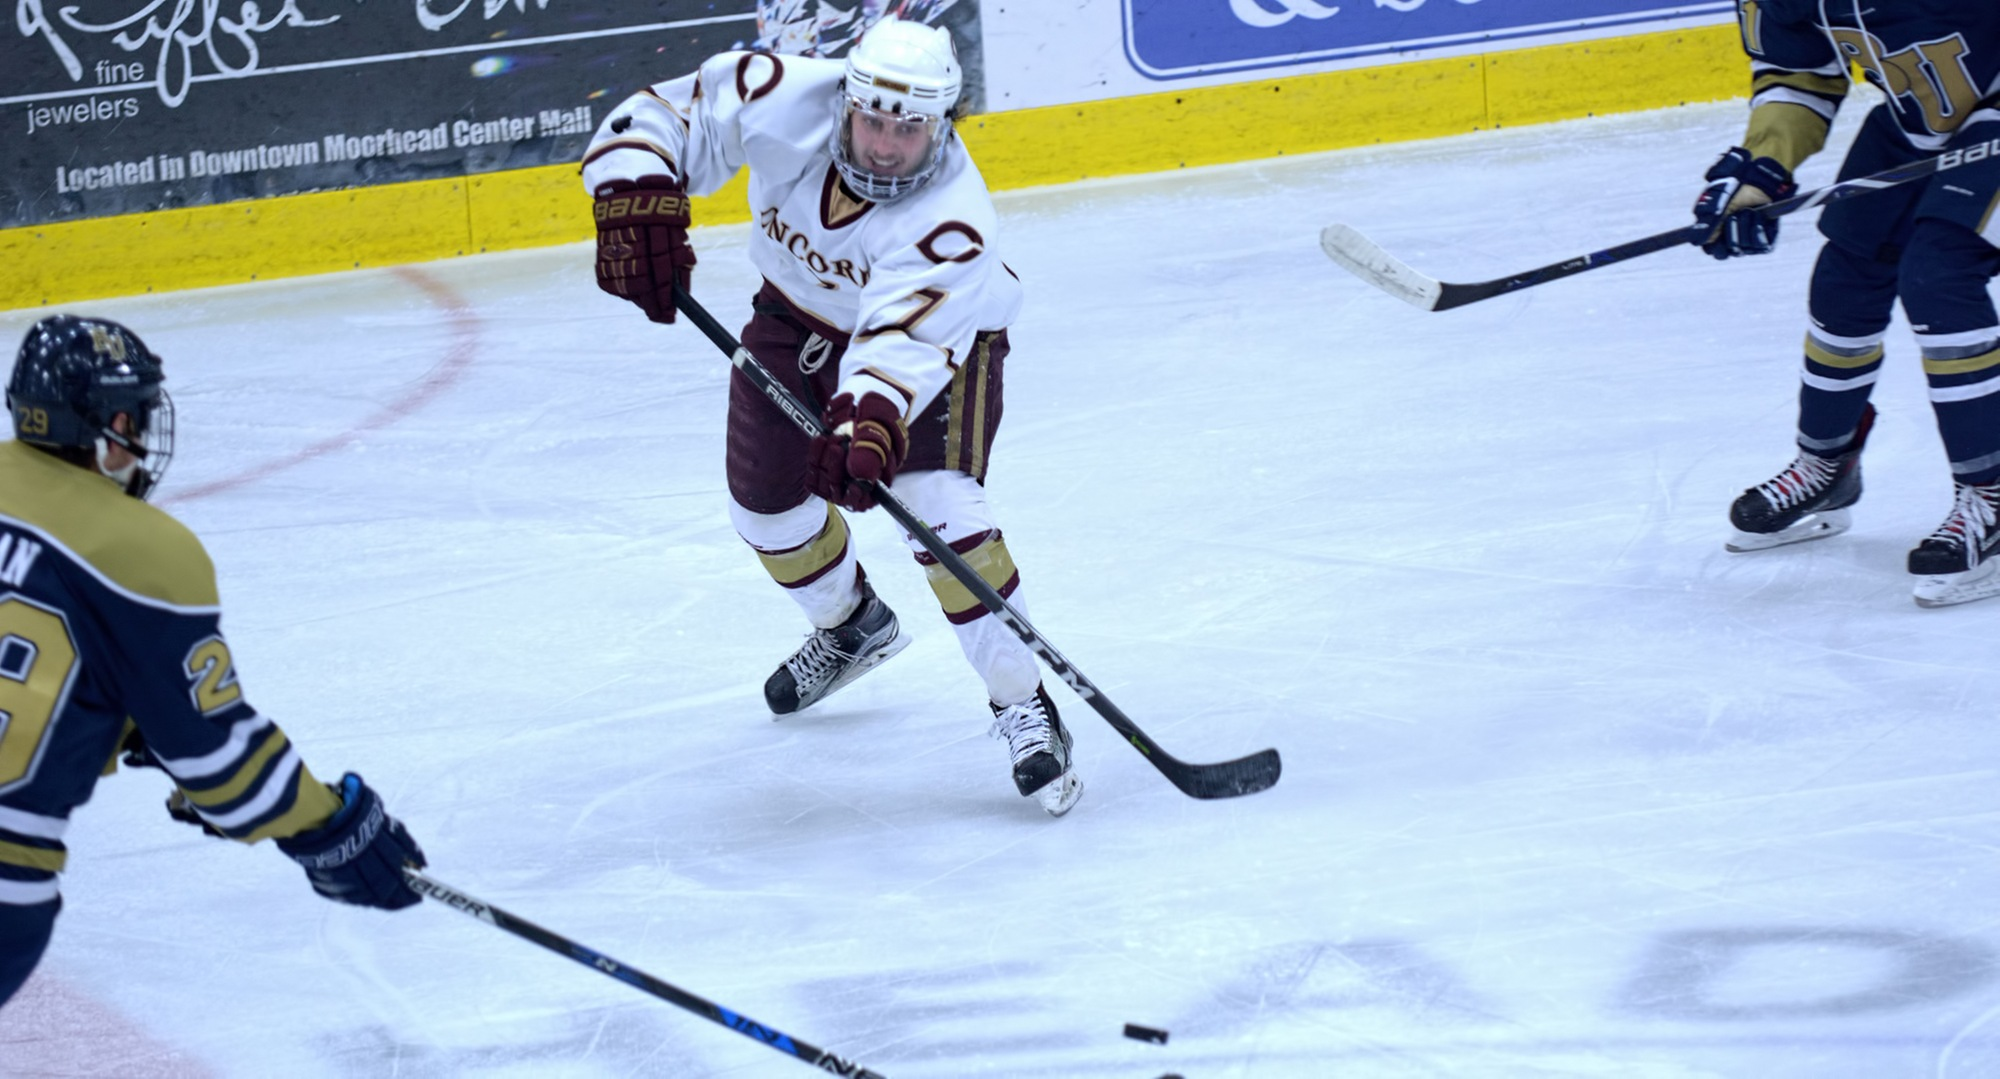 Joe Burgmeier had a game-high five shots on goal in the Cobbers' series finale at St. Olaf.